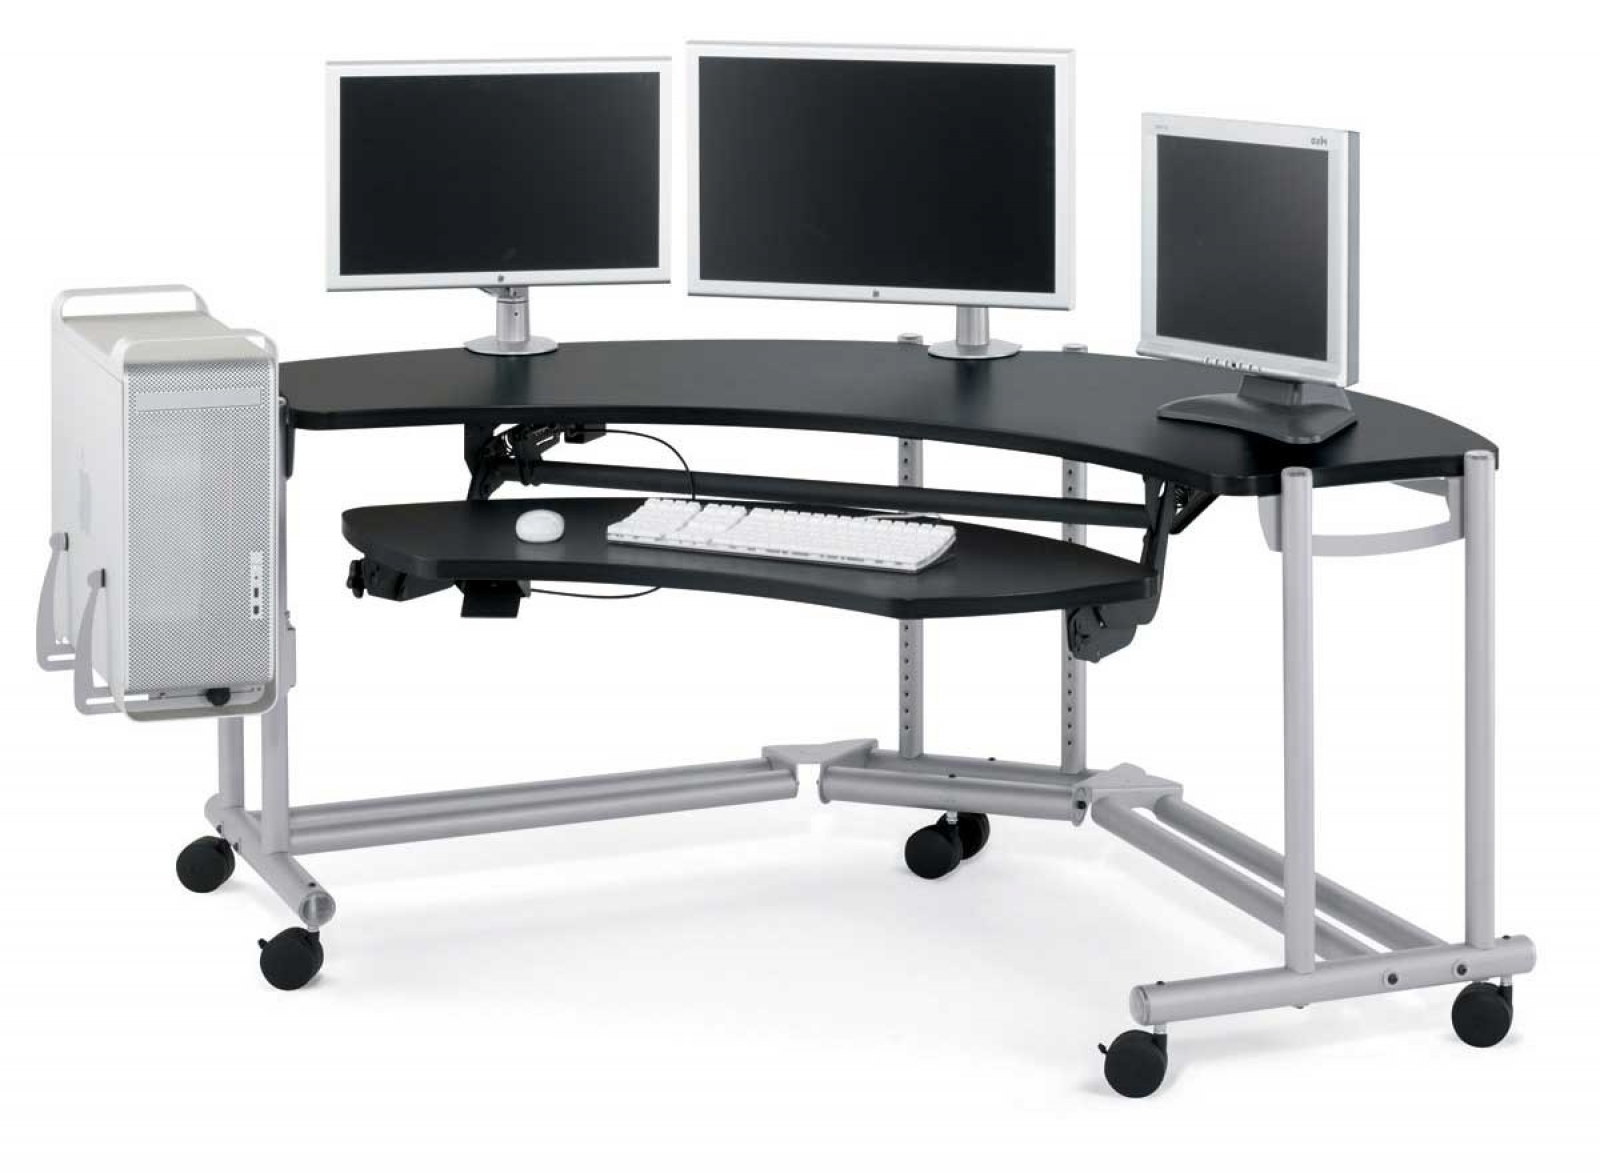 Computer Desks Ergonomic For Home Intended For Well Known Modern Ergonomic Gaming Computer Desk Office Corner Design Pc Ergo (View 5 of 20)